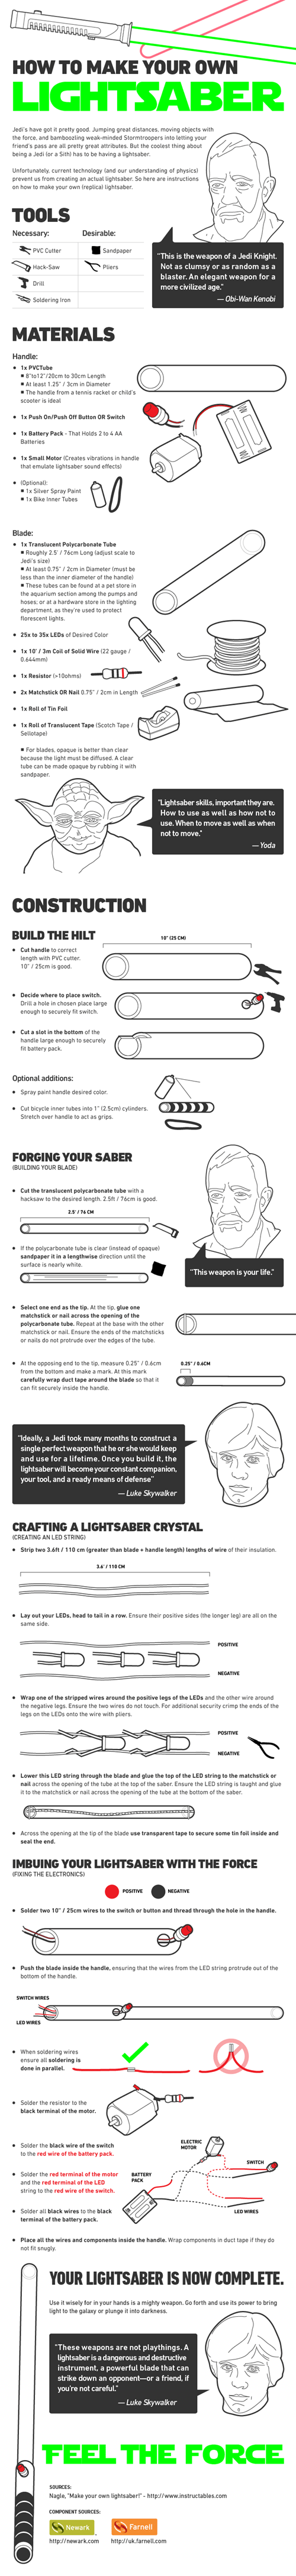 geek lightsaber star wars DIY infographic